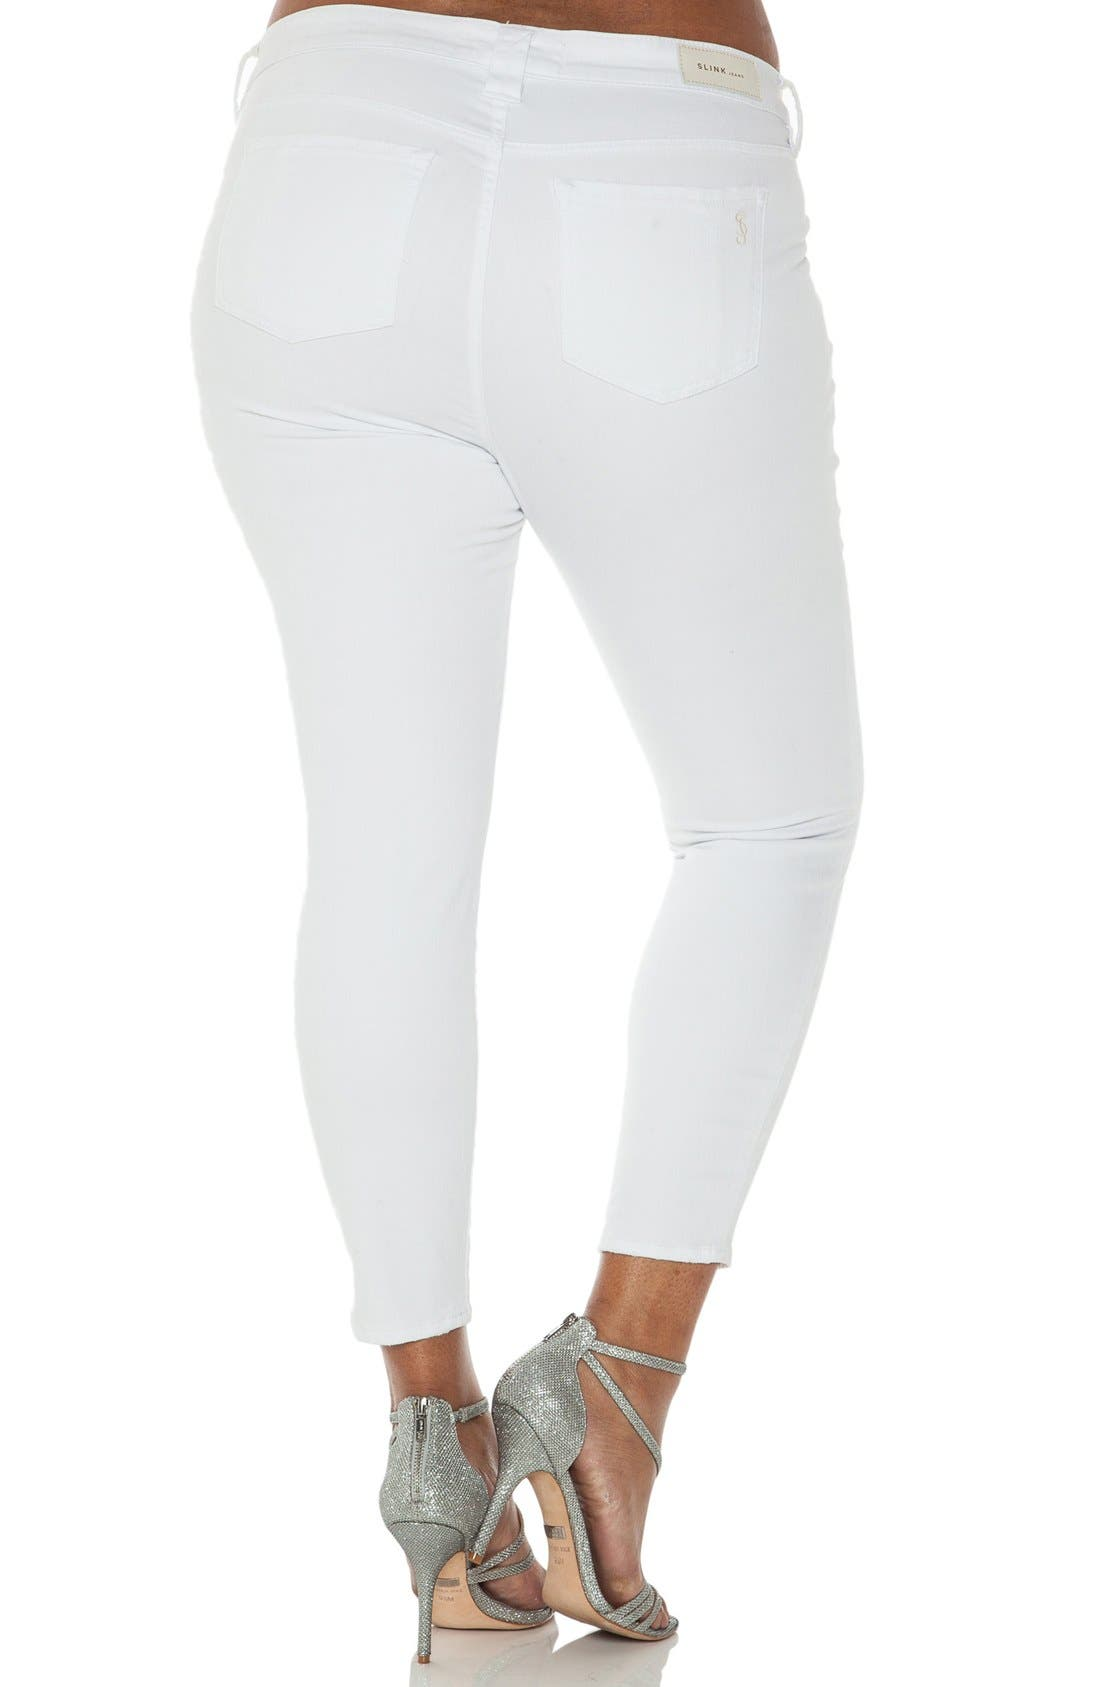 Alternate Image 2  - SLINK Jeans Stretch Ankle Skinny Jeans (Optical White) (Plus Size)